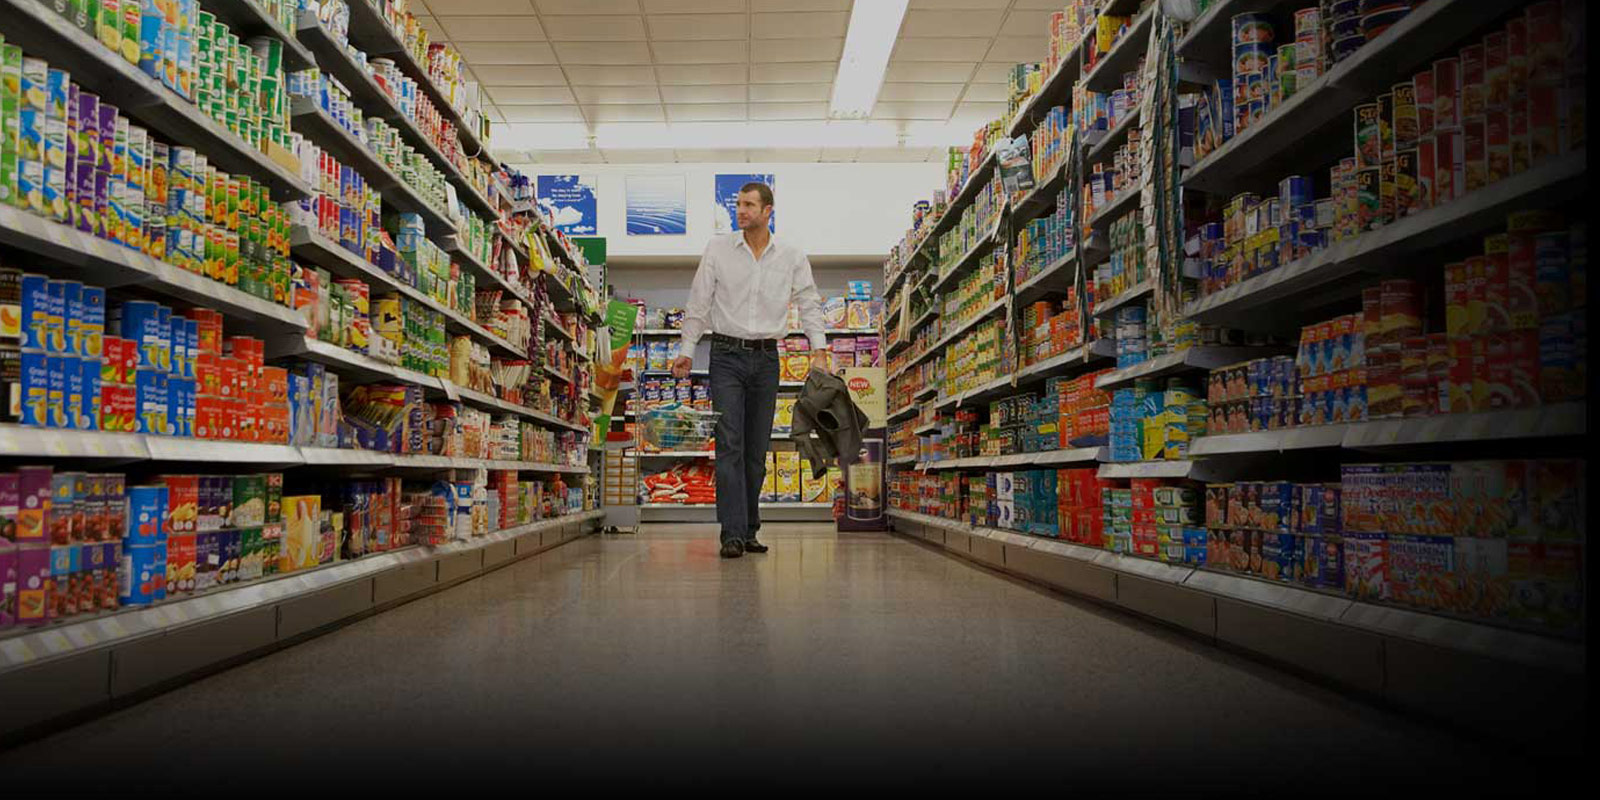 Consumer First - When Did the Consumer Lose Control?